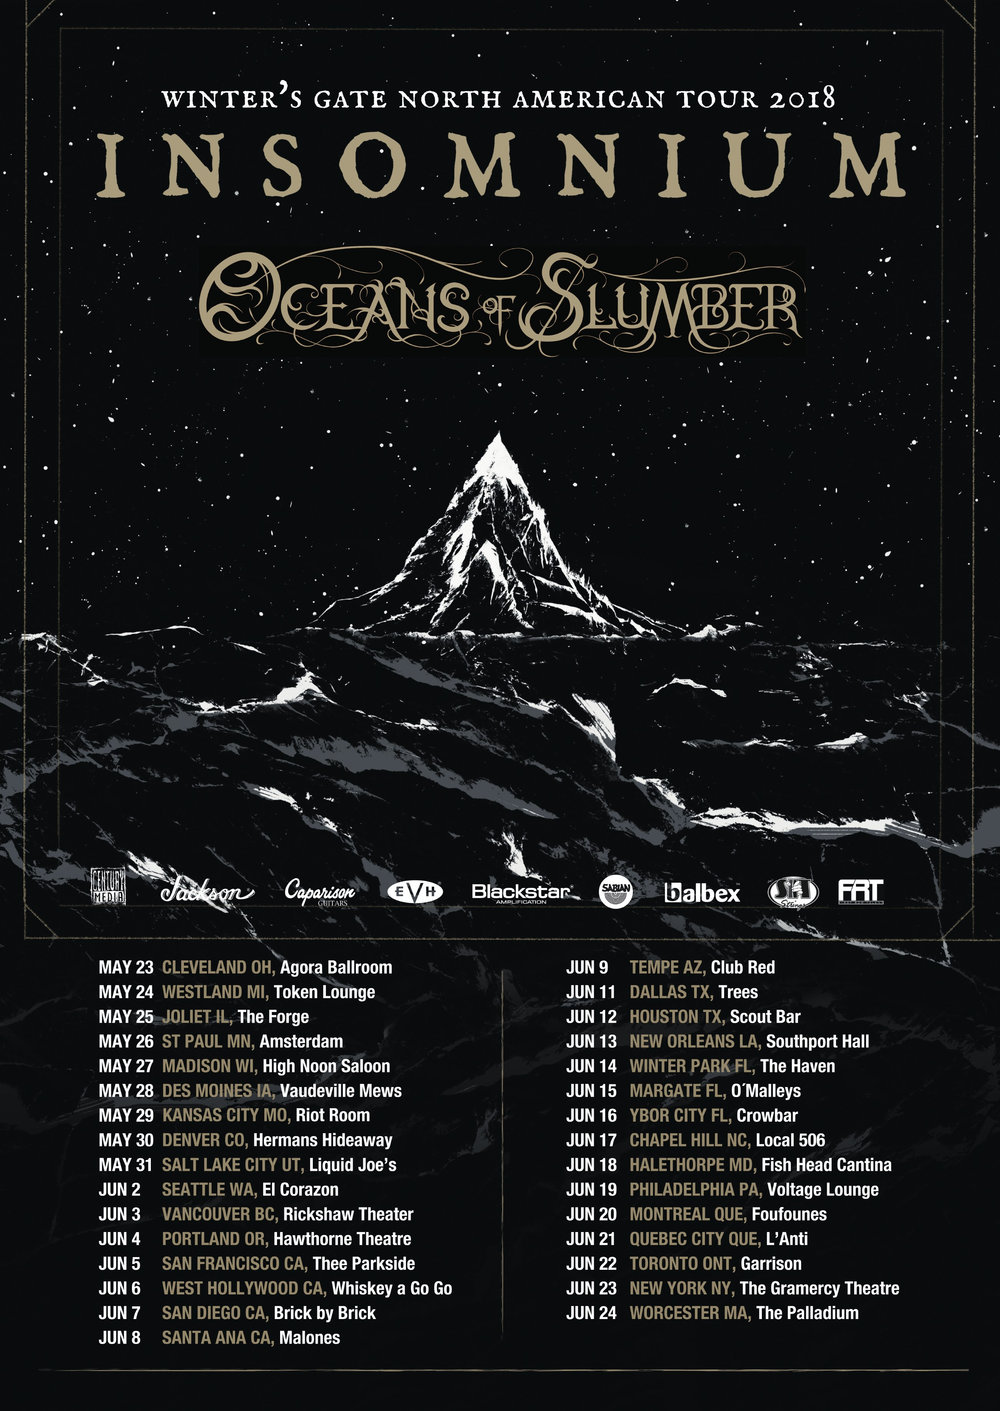 Finnish melodic death metal outfit  INSOMNIUM  will kick off their North American tour featuring direct support from Houston, TX-based progressive metal group  OCEANS OF SLUMBER  tonight in Cleveland, OH at Agora Ballroom! Making their way across the U.S. and Canada over the next month, the tour will make it's final stop on June 24 at The Palladium in Worcester, MA. Full dates can be found in the above tour poster or listed below.  Fans can enter to win a pair of tickets for each stop on the tour exclusively via Metalsucks. To enter to win, please visit:  http://www.metalsucks.net/2018/05/22/were-giving-away-a-pair-of-tickets-for-every-stop-on-insomnium-and-oceans-of-slumbers-north-american-tour/